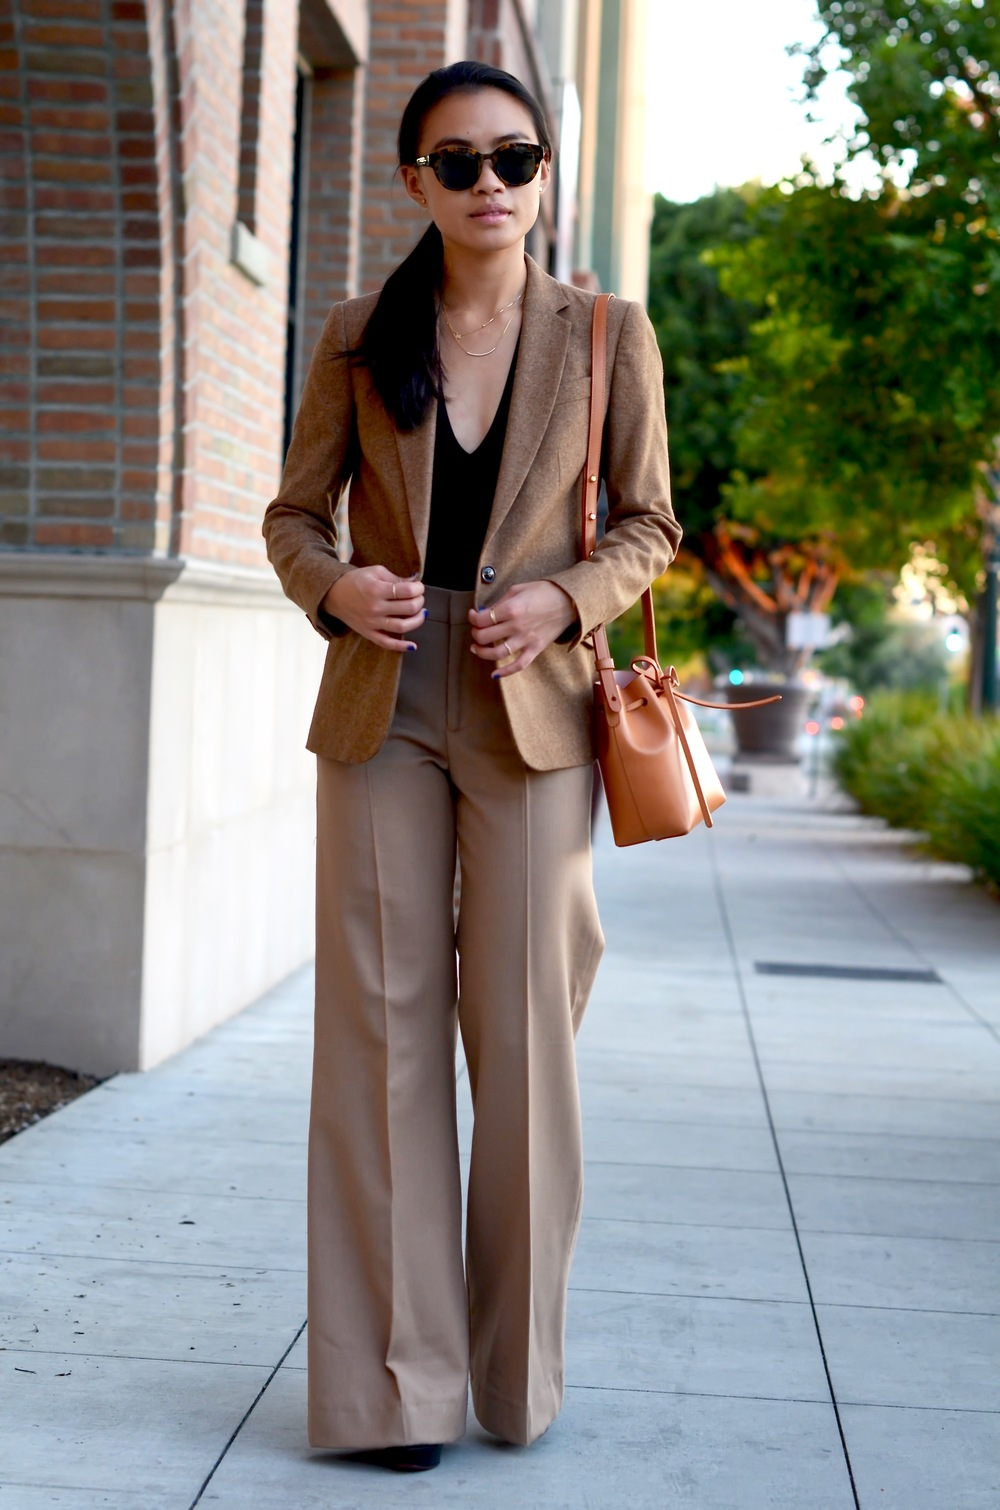 Just Goh With It-Outfit-shopstyle-dressforsuccess-zara-camel-wide-leg-pants-massimo-dutti-blazer-mansur-gavriel-mini-bucket-bag-1.jpg